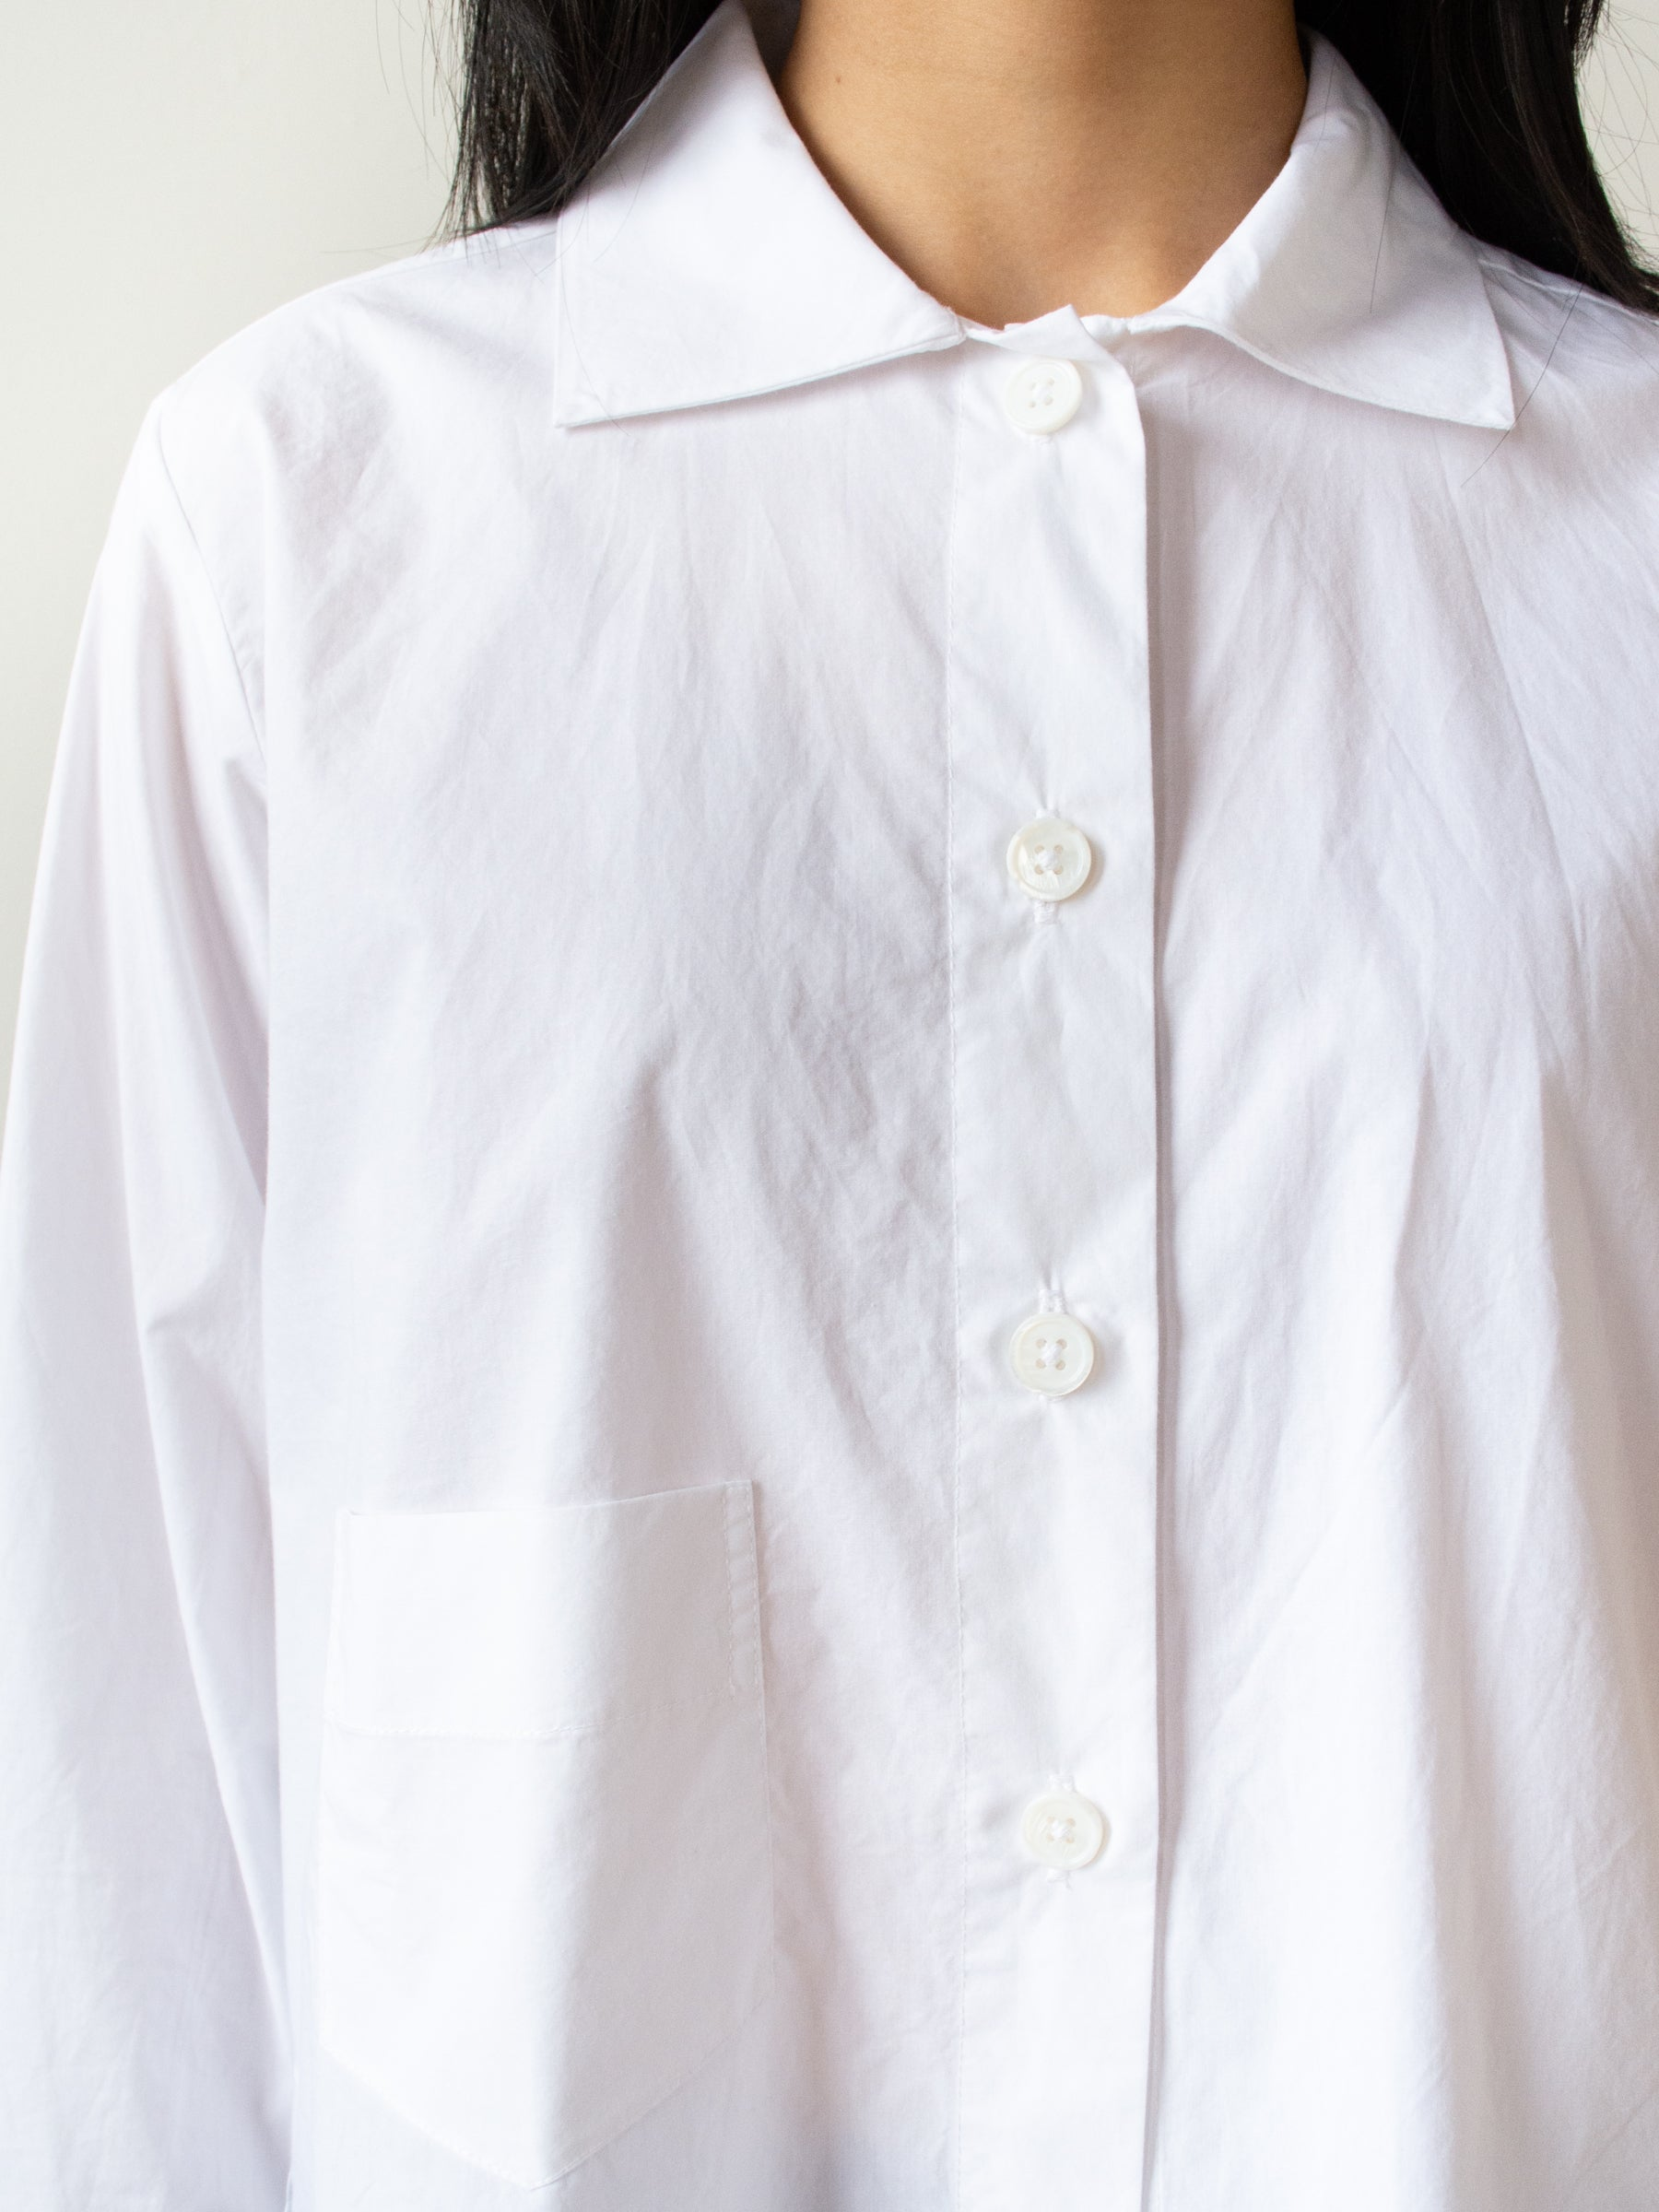 Kiki Shirt - White Cotton Poplin